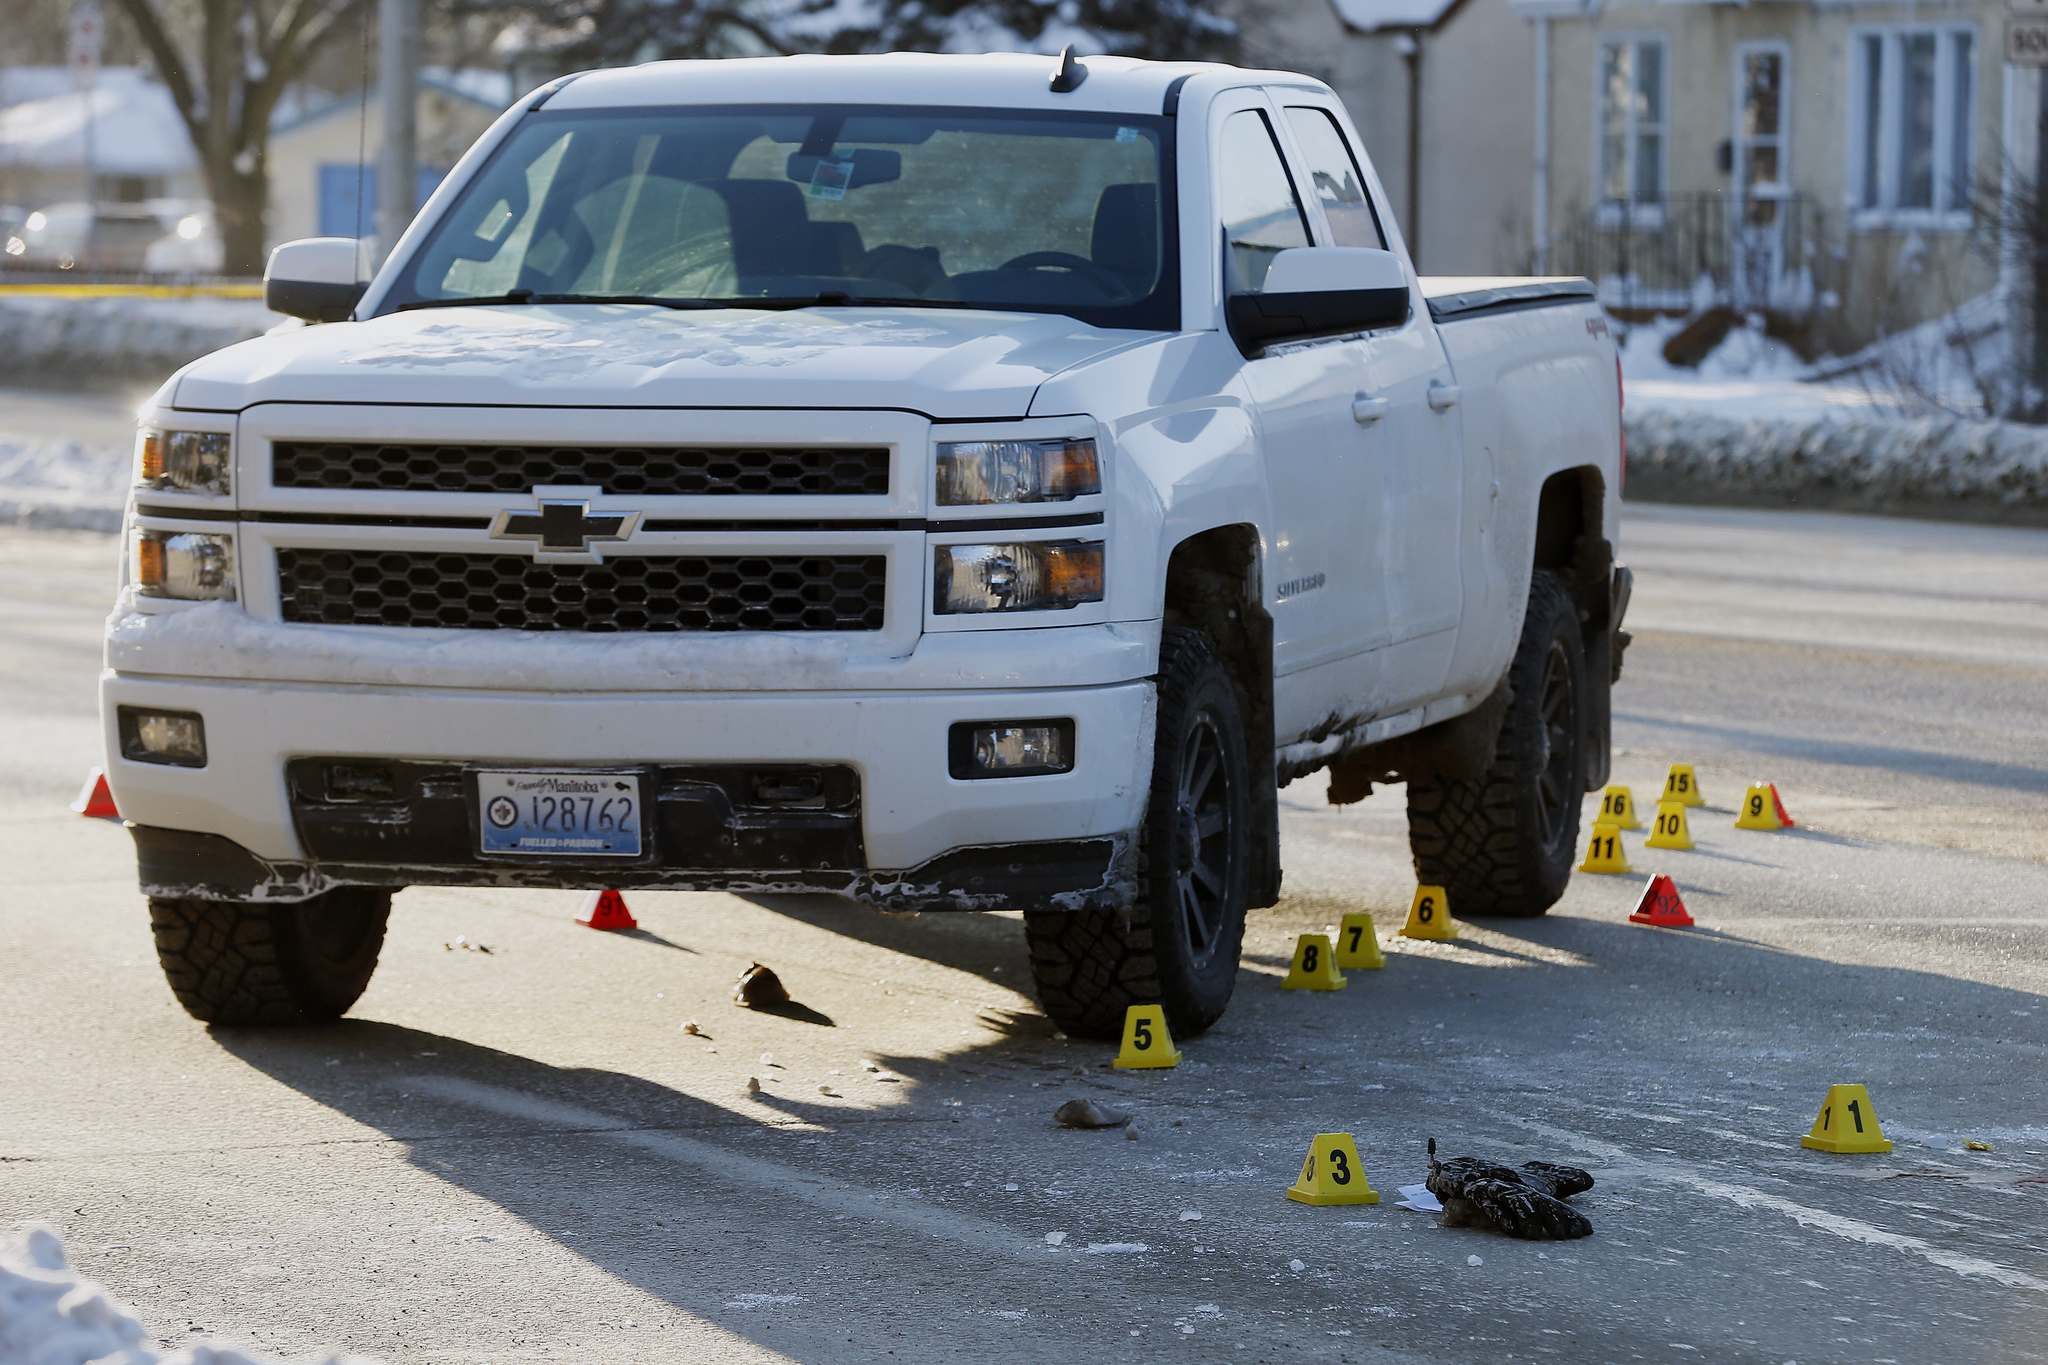 JOHN WOODS / FREE PRESS FILES</p><p>The woman was crossing Henderson when she was run into by a Chevrolet Silverado making a turn from Kimberly Avenue.</p>